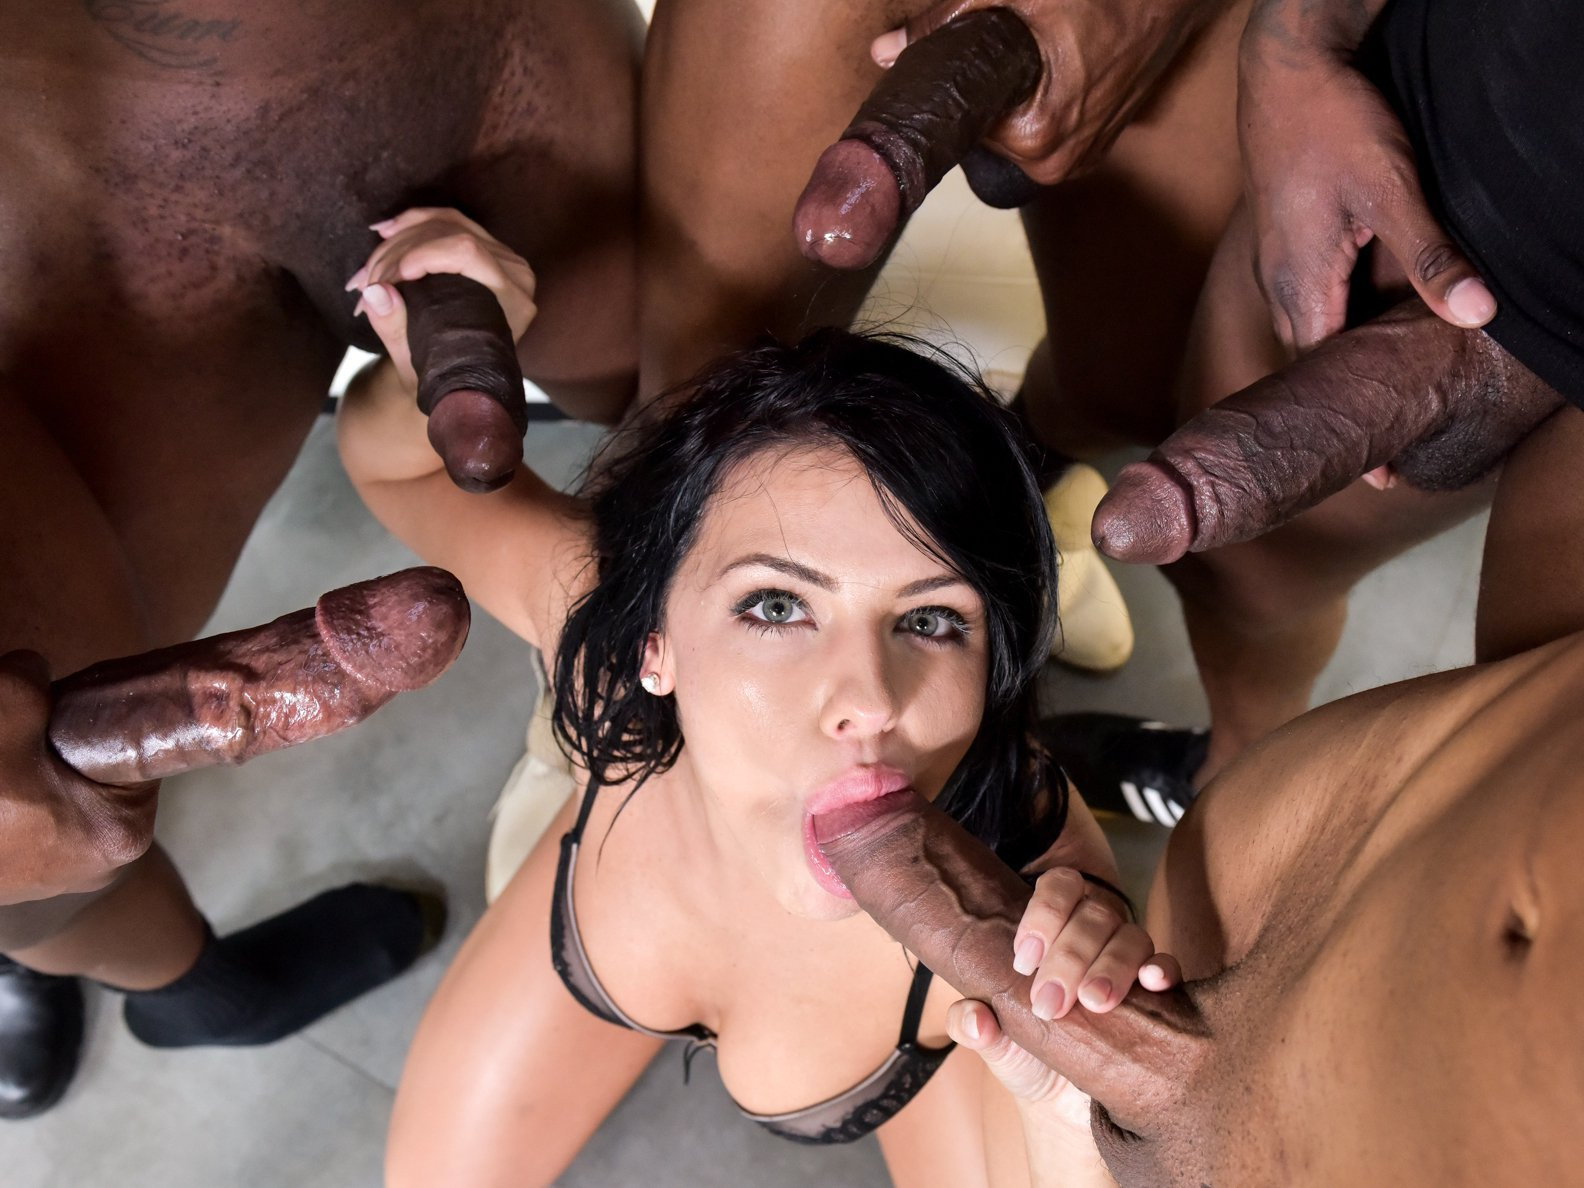 Huge Cock Gangbang, Gangbang Monster, Cumshot Compilation